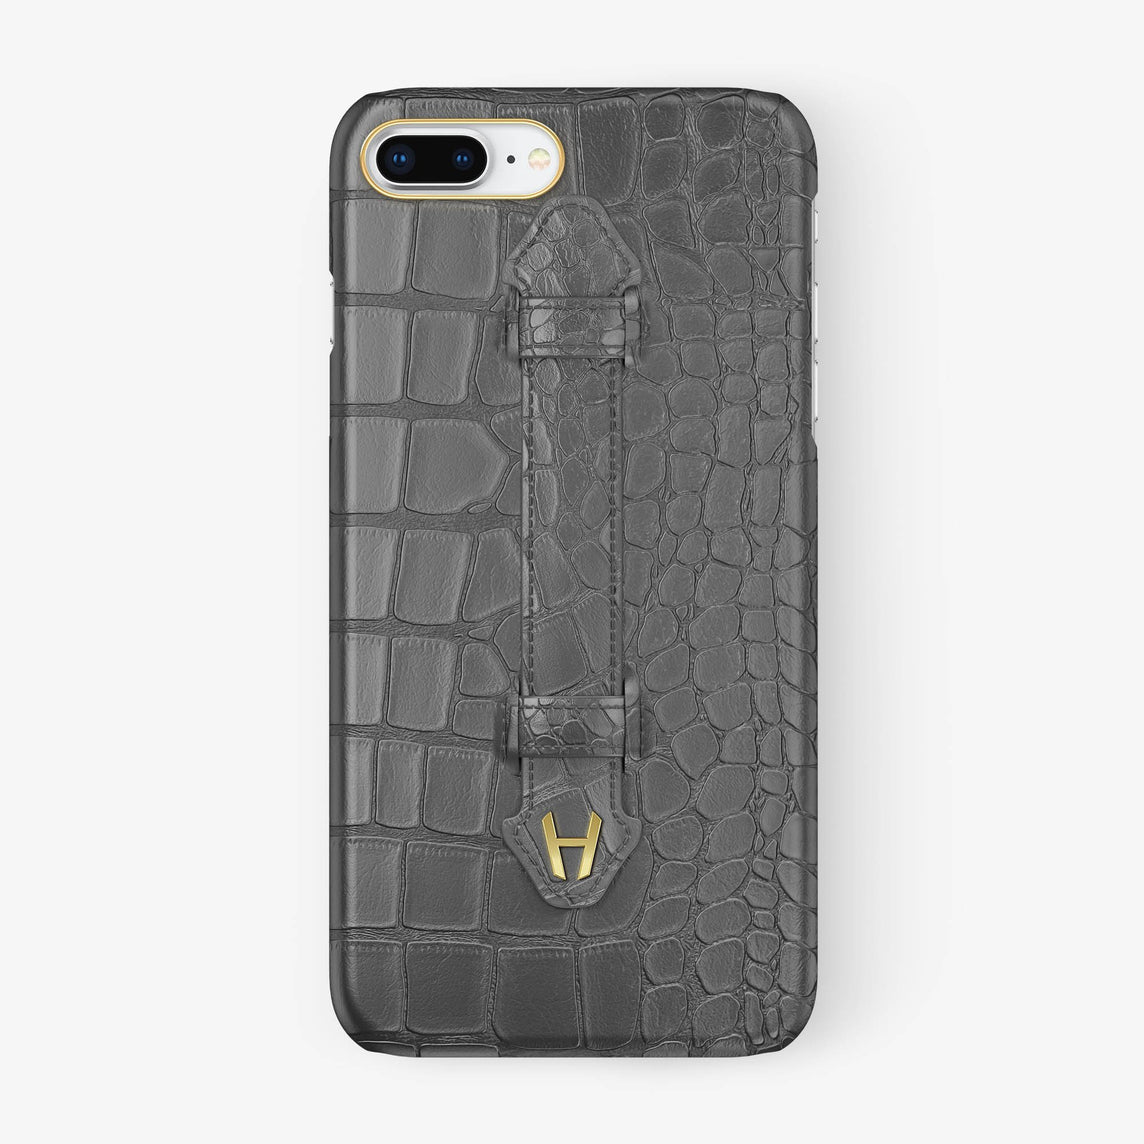 Grey Alligator iPhone Finger Case for iPhone 7/8 Plus finishing yellow gold - Hadoro Luxury Cases